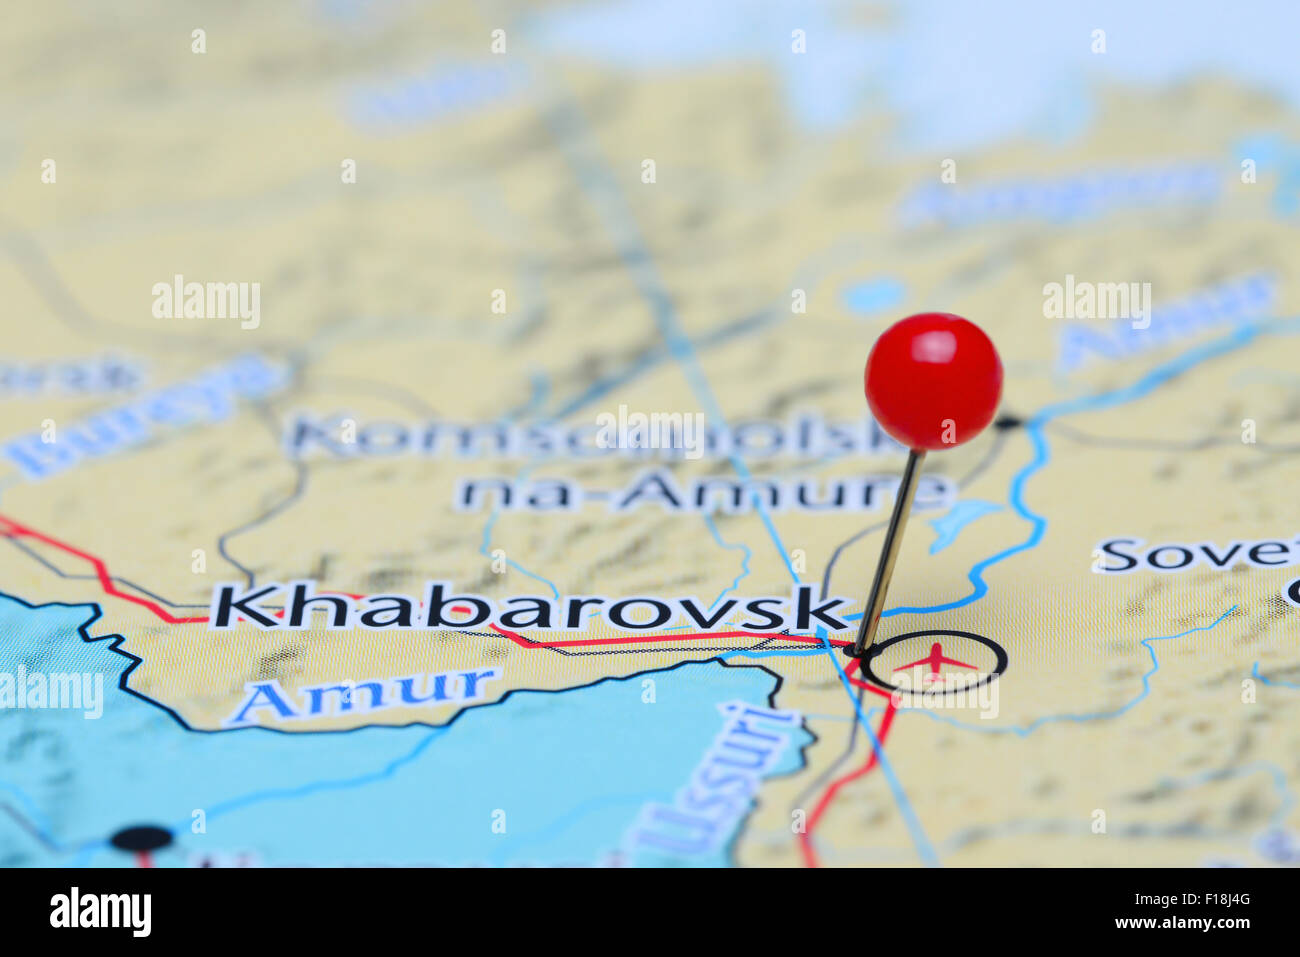 Khabarovsk pinned on a map of Asia Stock Photo Royalty Free Image